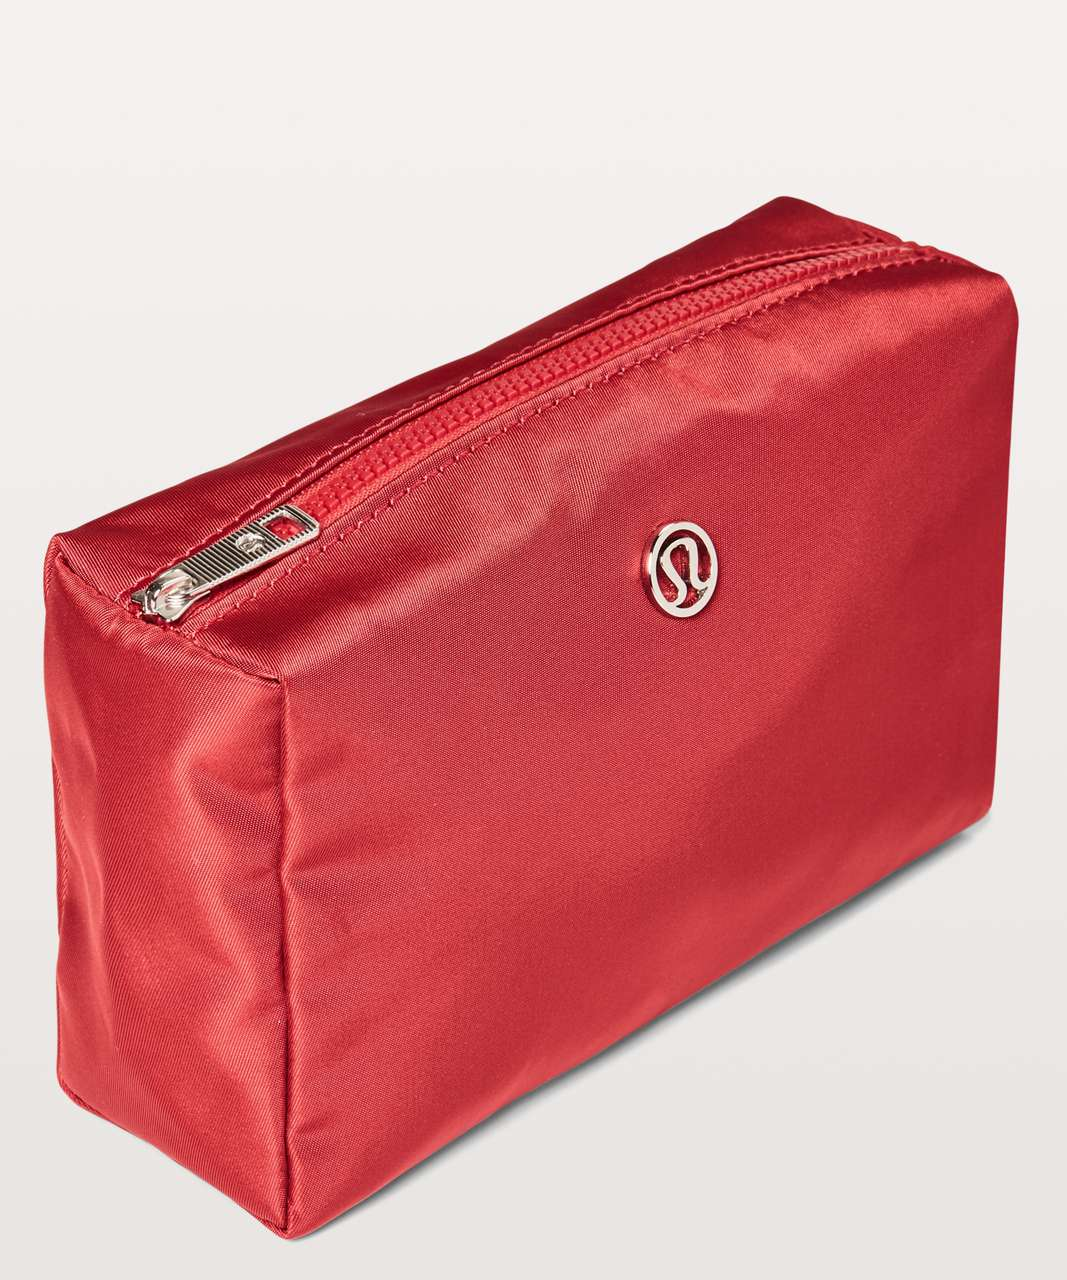 Lululemon All Your Small Things Pouch Mini - Persian Red